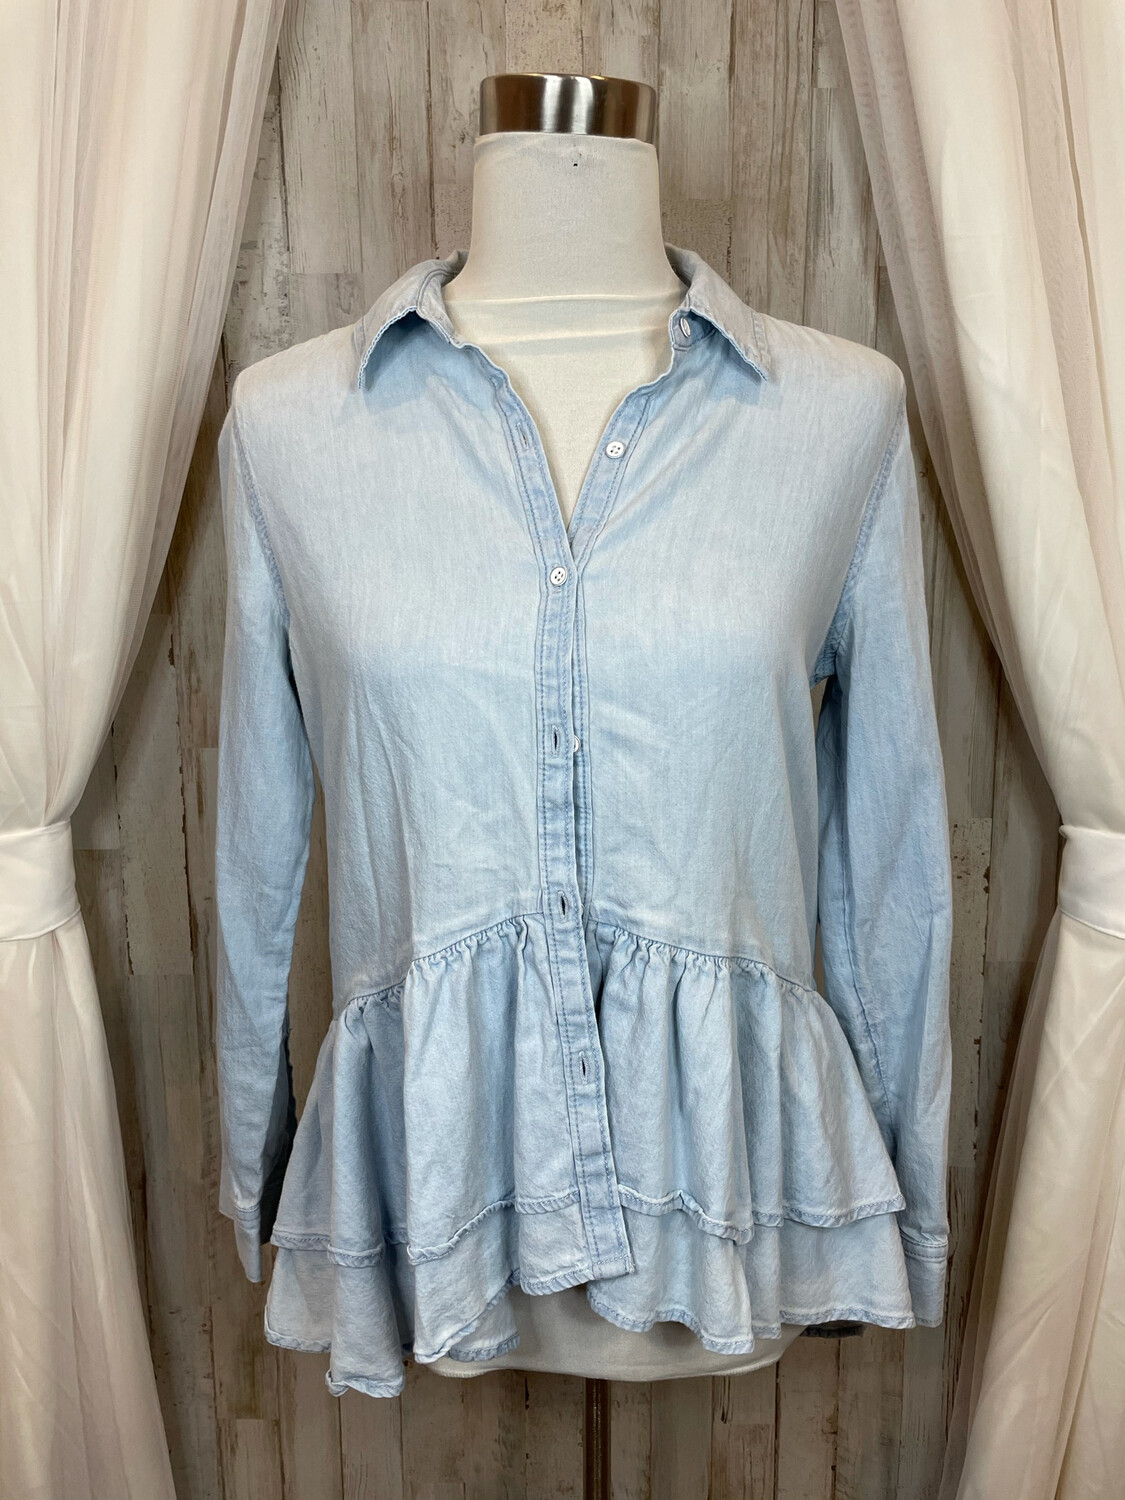 Melrose and Market Chambray Ruffle Top - S